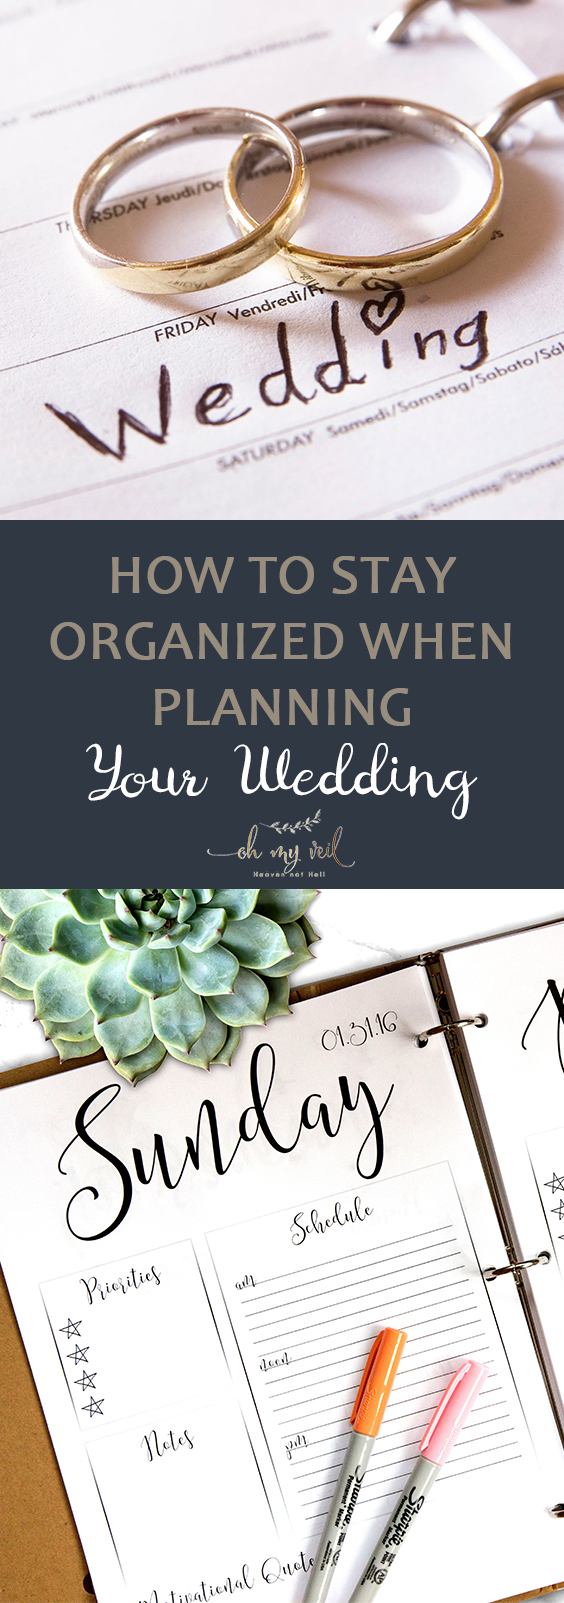 Wedding Planning, Wedding Planning Tips, Wedding Planning Hacks, How to Plan Your Wedding, Stress Free Wedding Planning, Stress Free Wedding, Popular